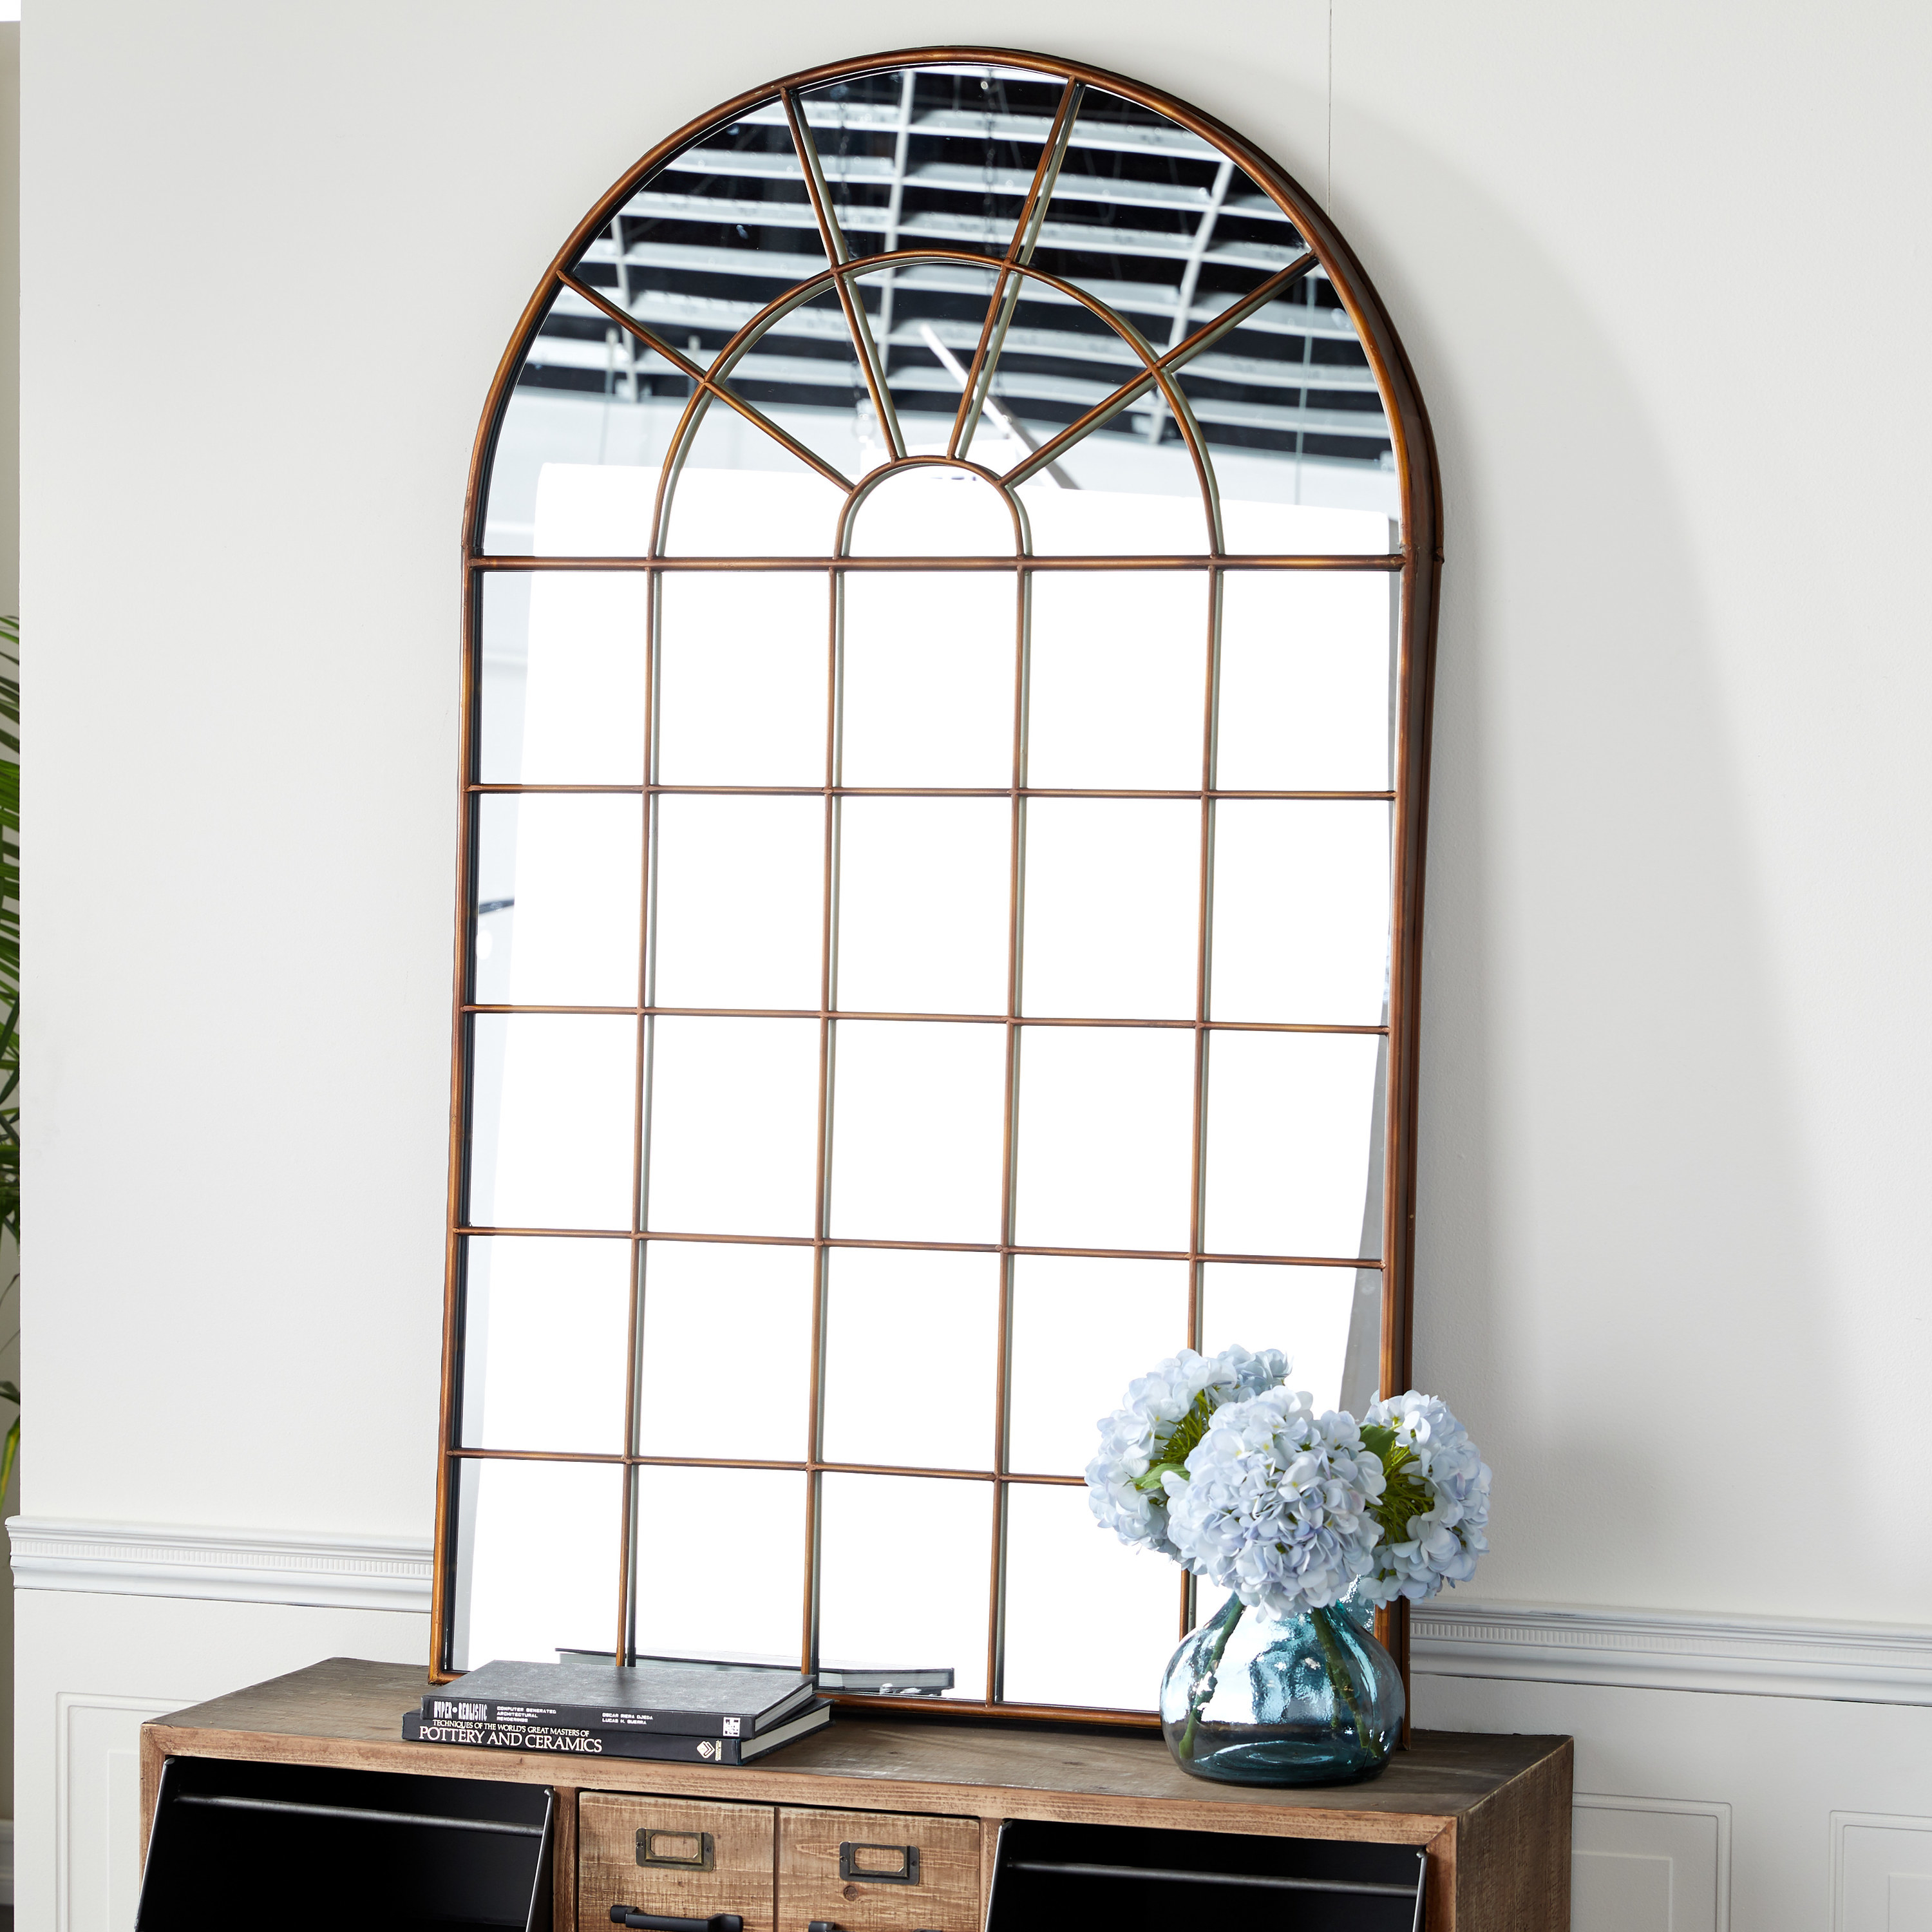 Curved top mirror with metal planes